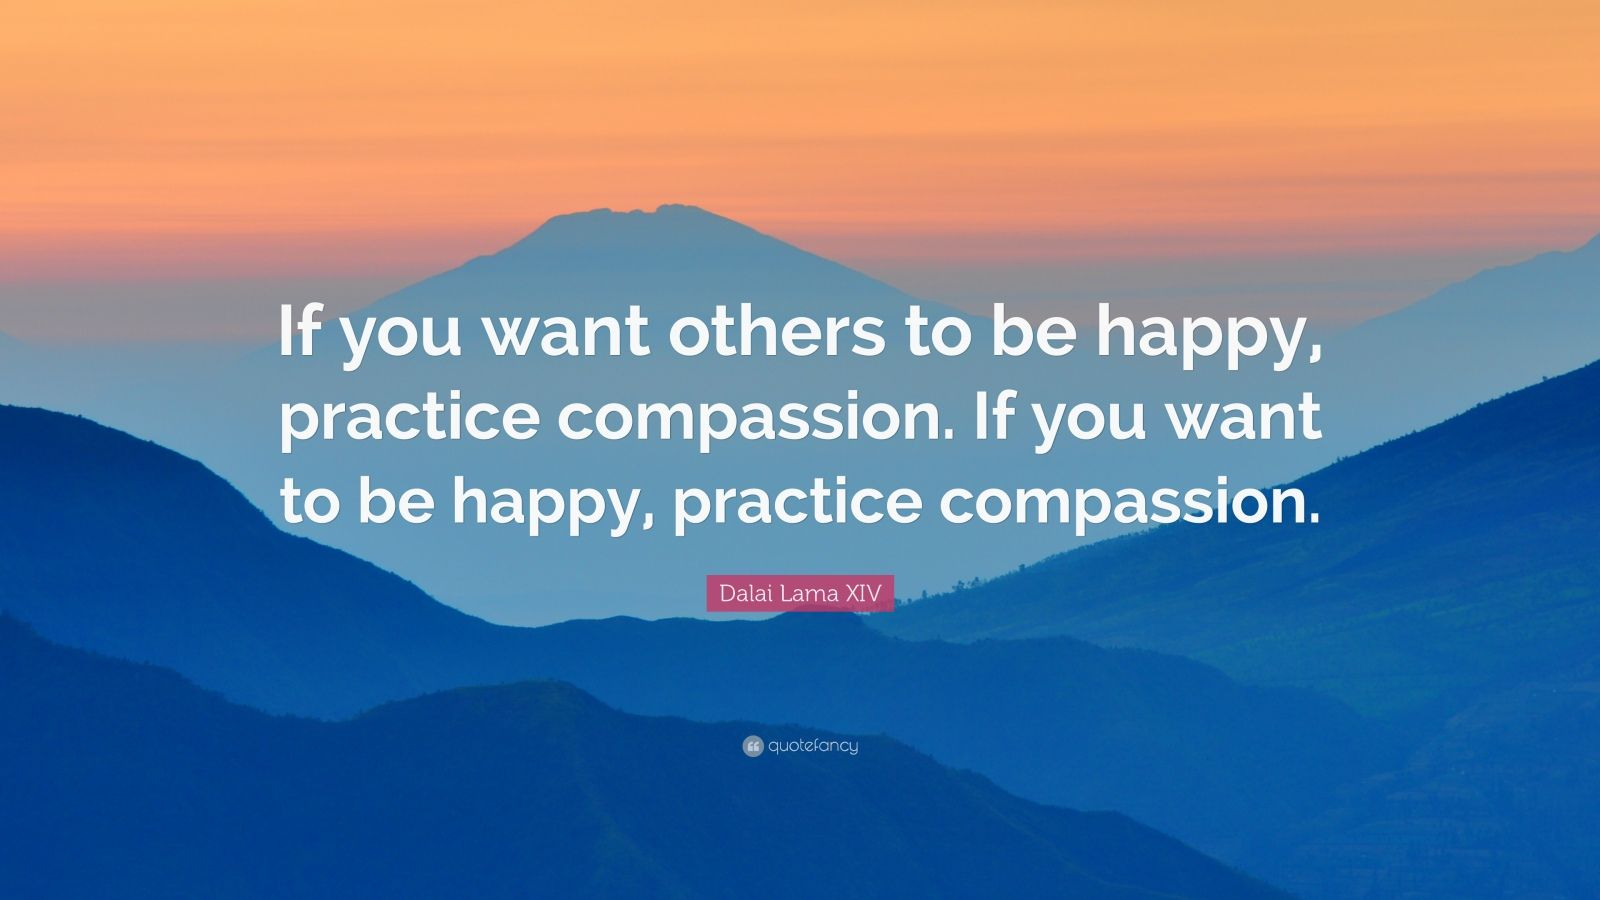 Socrates Wallpaper Quotes Dalai Lama Xiv Quote If You Want Others To Be Happy